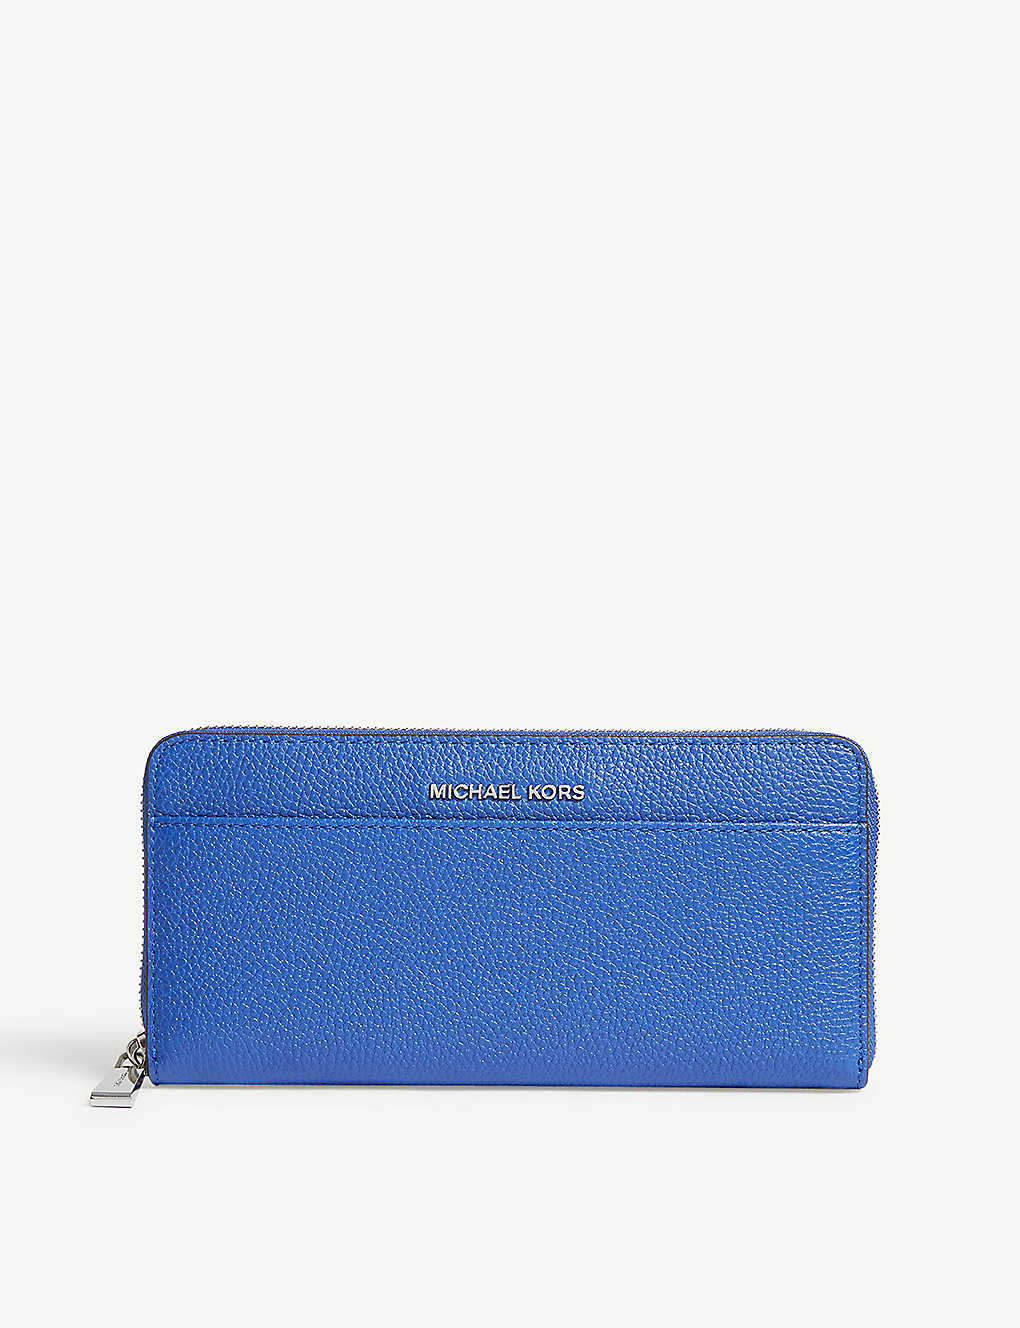 a6df329deeadfb MICHAEL MICHAEL KORS - Mercer leather purse | Selfridges.com